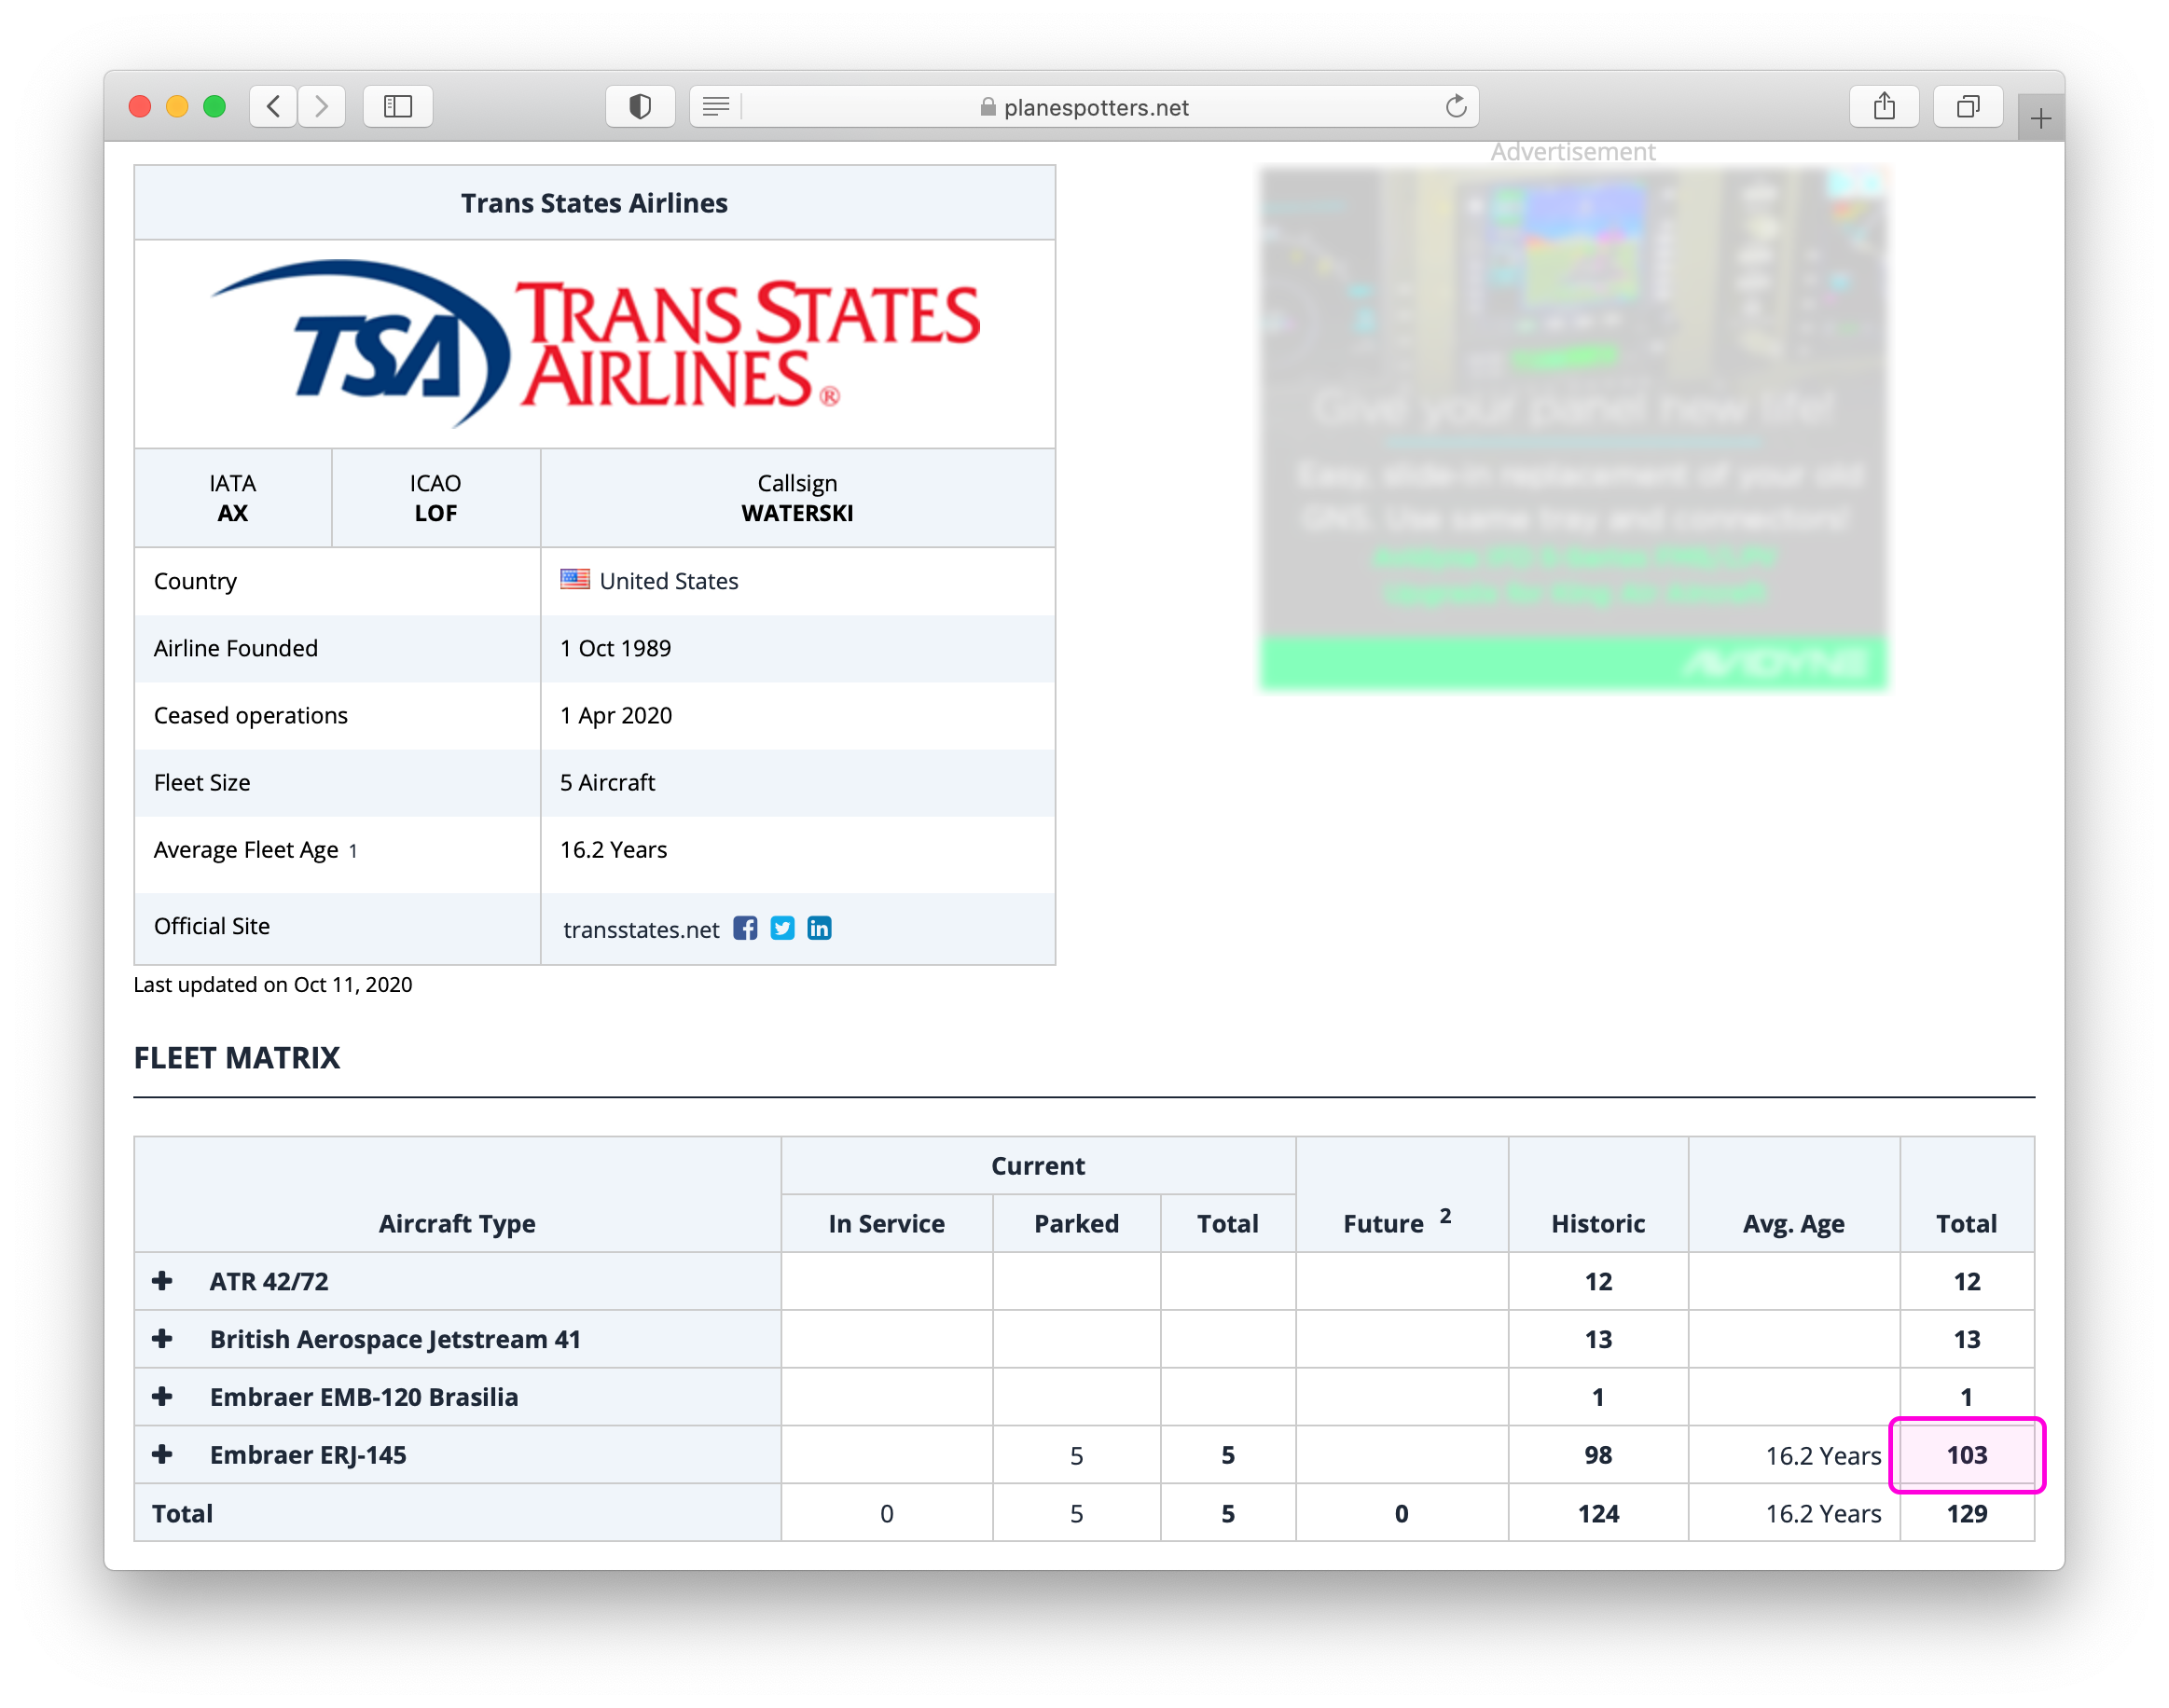 Planespotters.net fleet details page for Trans States Airlines. The cell at the intersection of the Embraer ERJ-145 row and the Total column is highlighted in magenta.